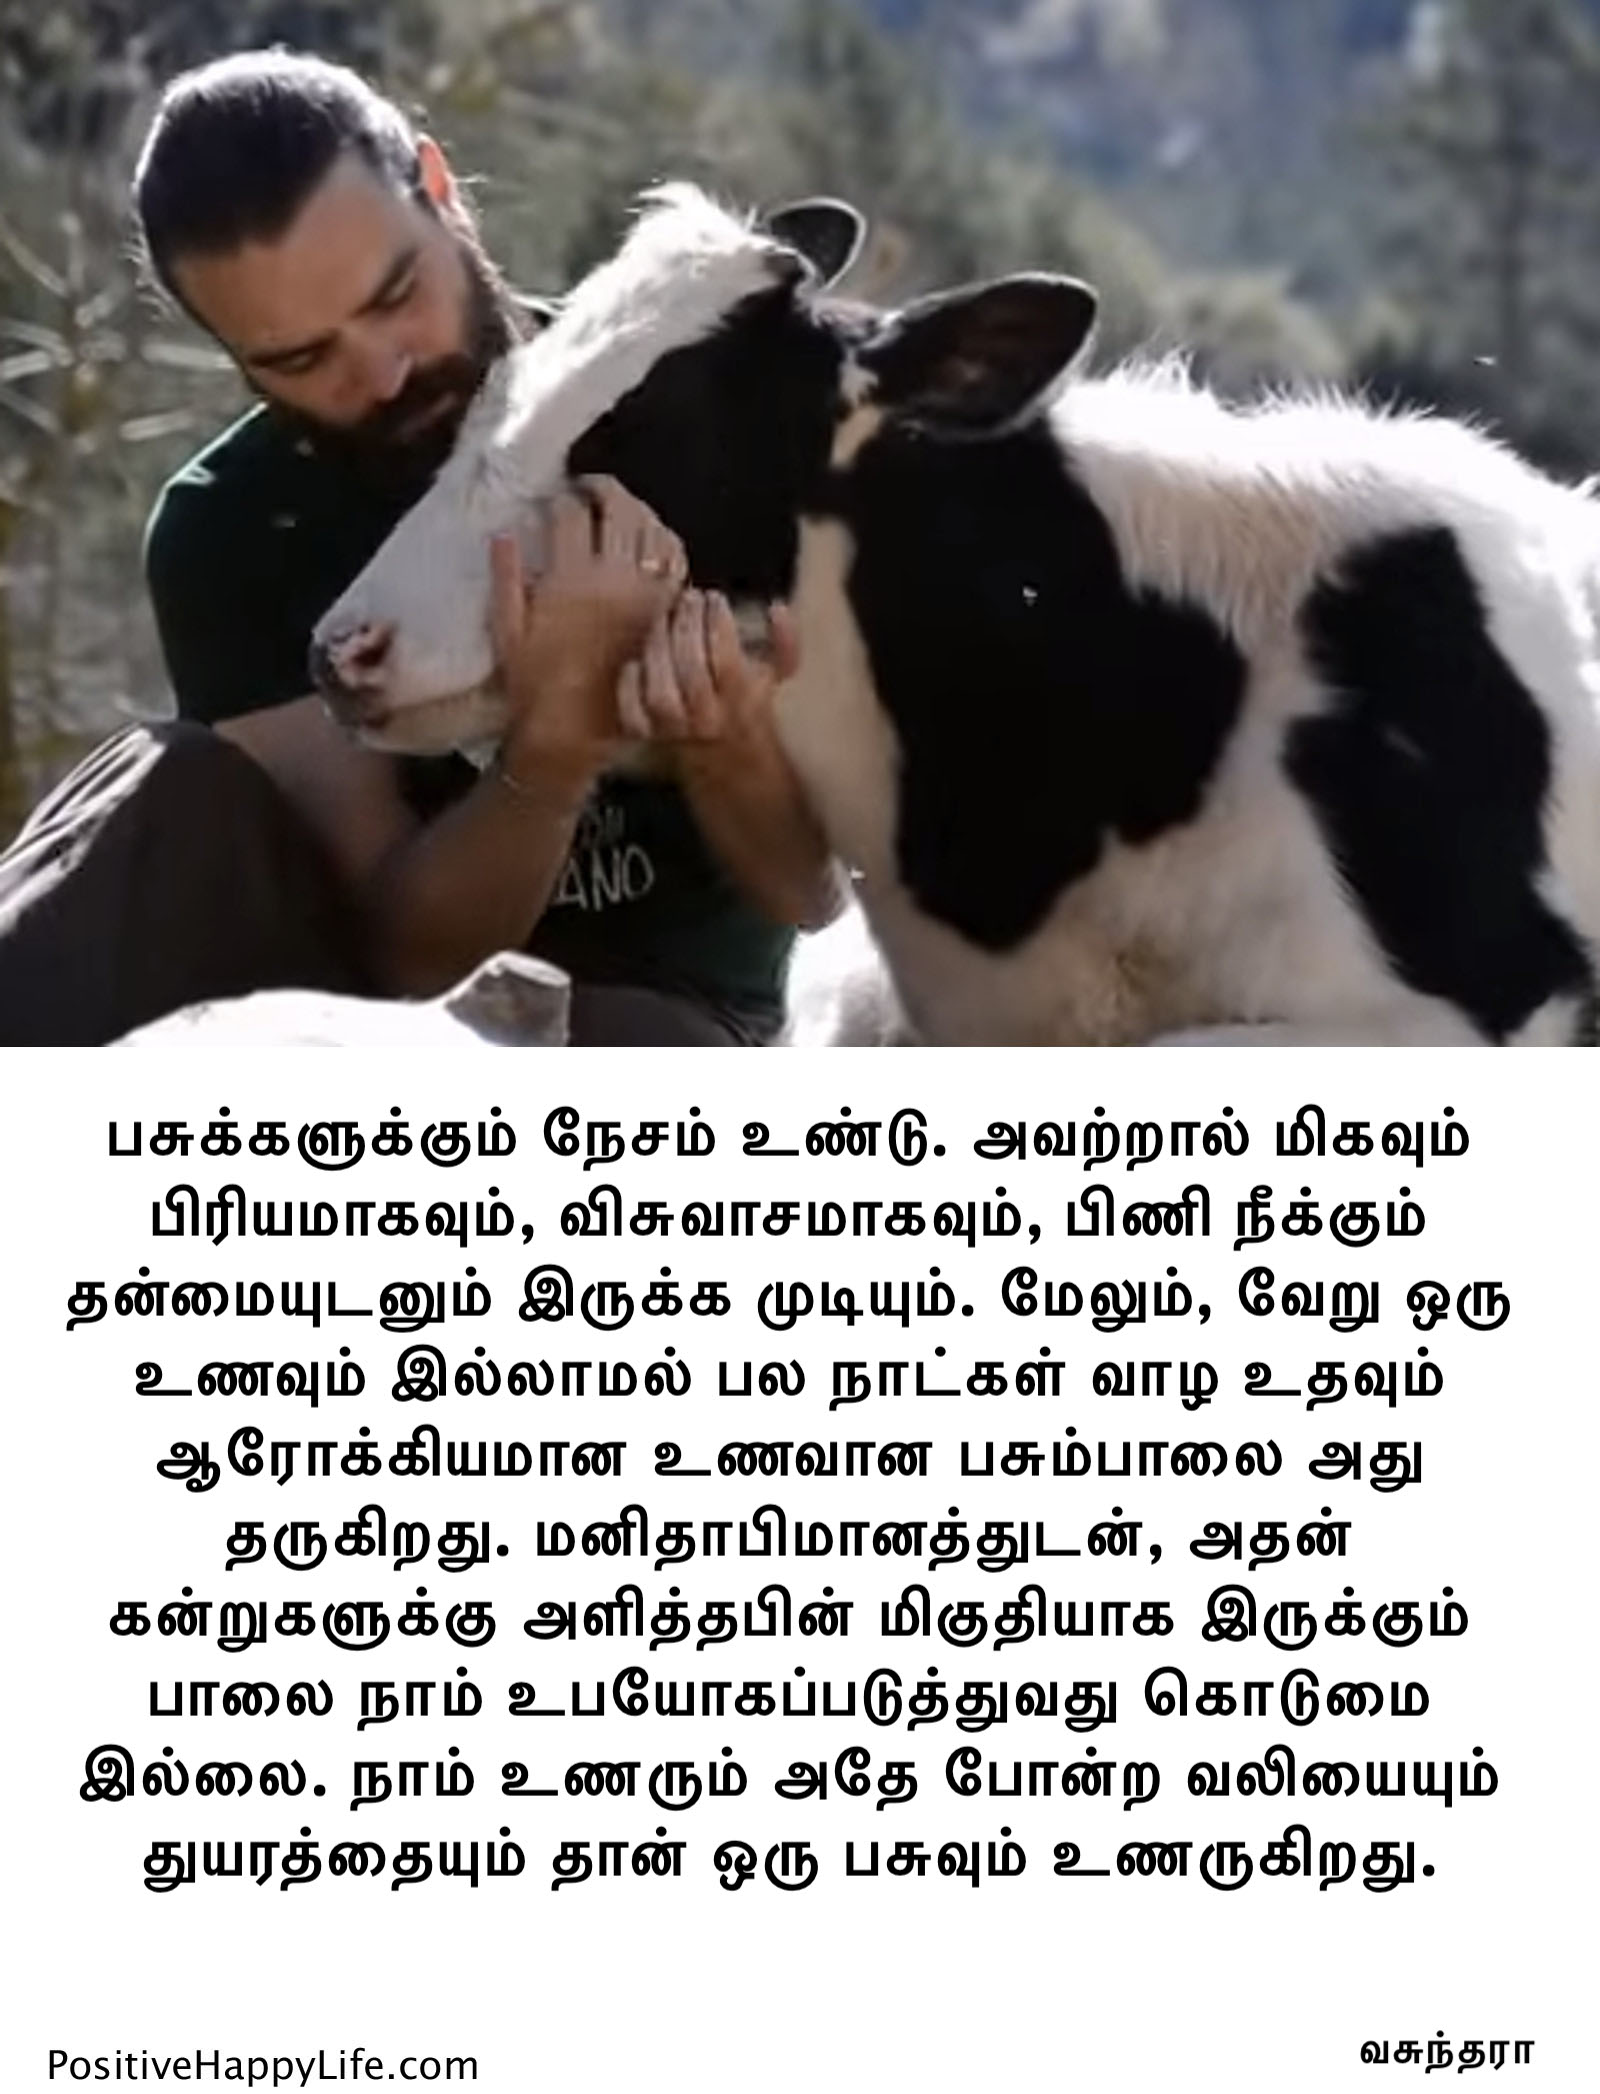 Cows can love too t